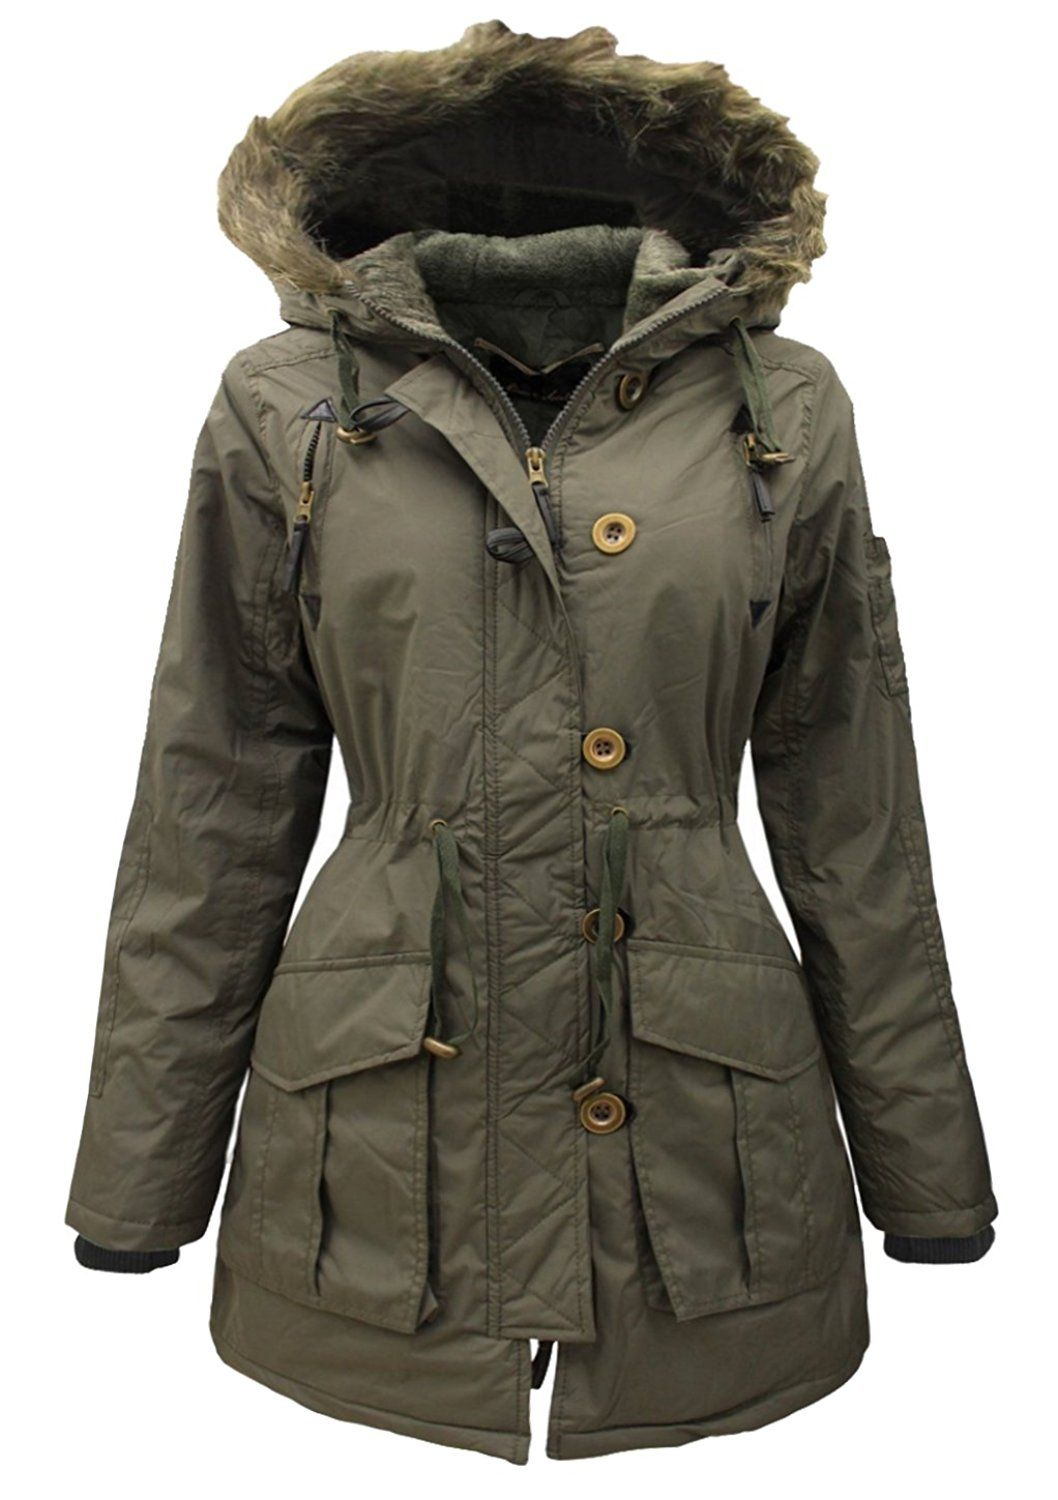 3ed1c793889cb NEW WOMENS Ladies Plus Size Parka MILITARY Quilted HOODED Winter Coat SIZE  18-24 (8, KHAKI)